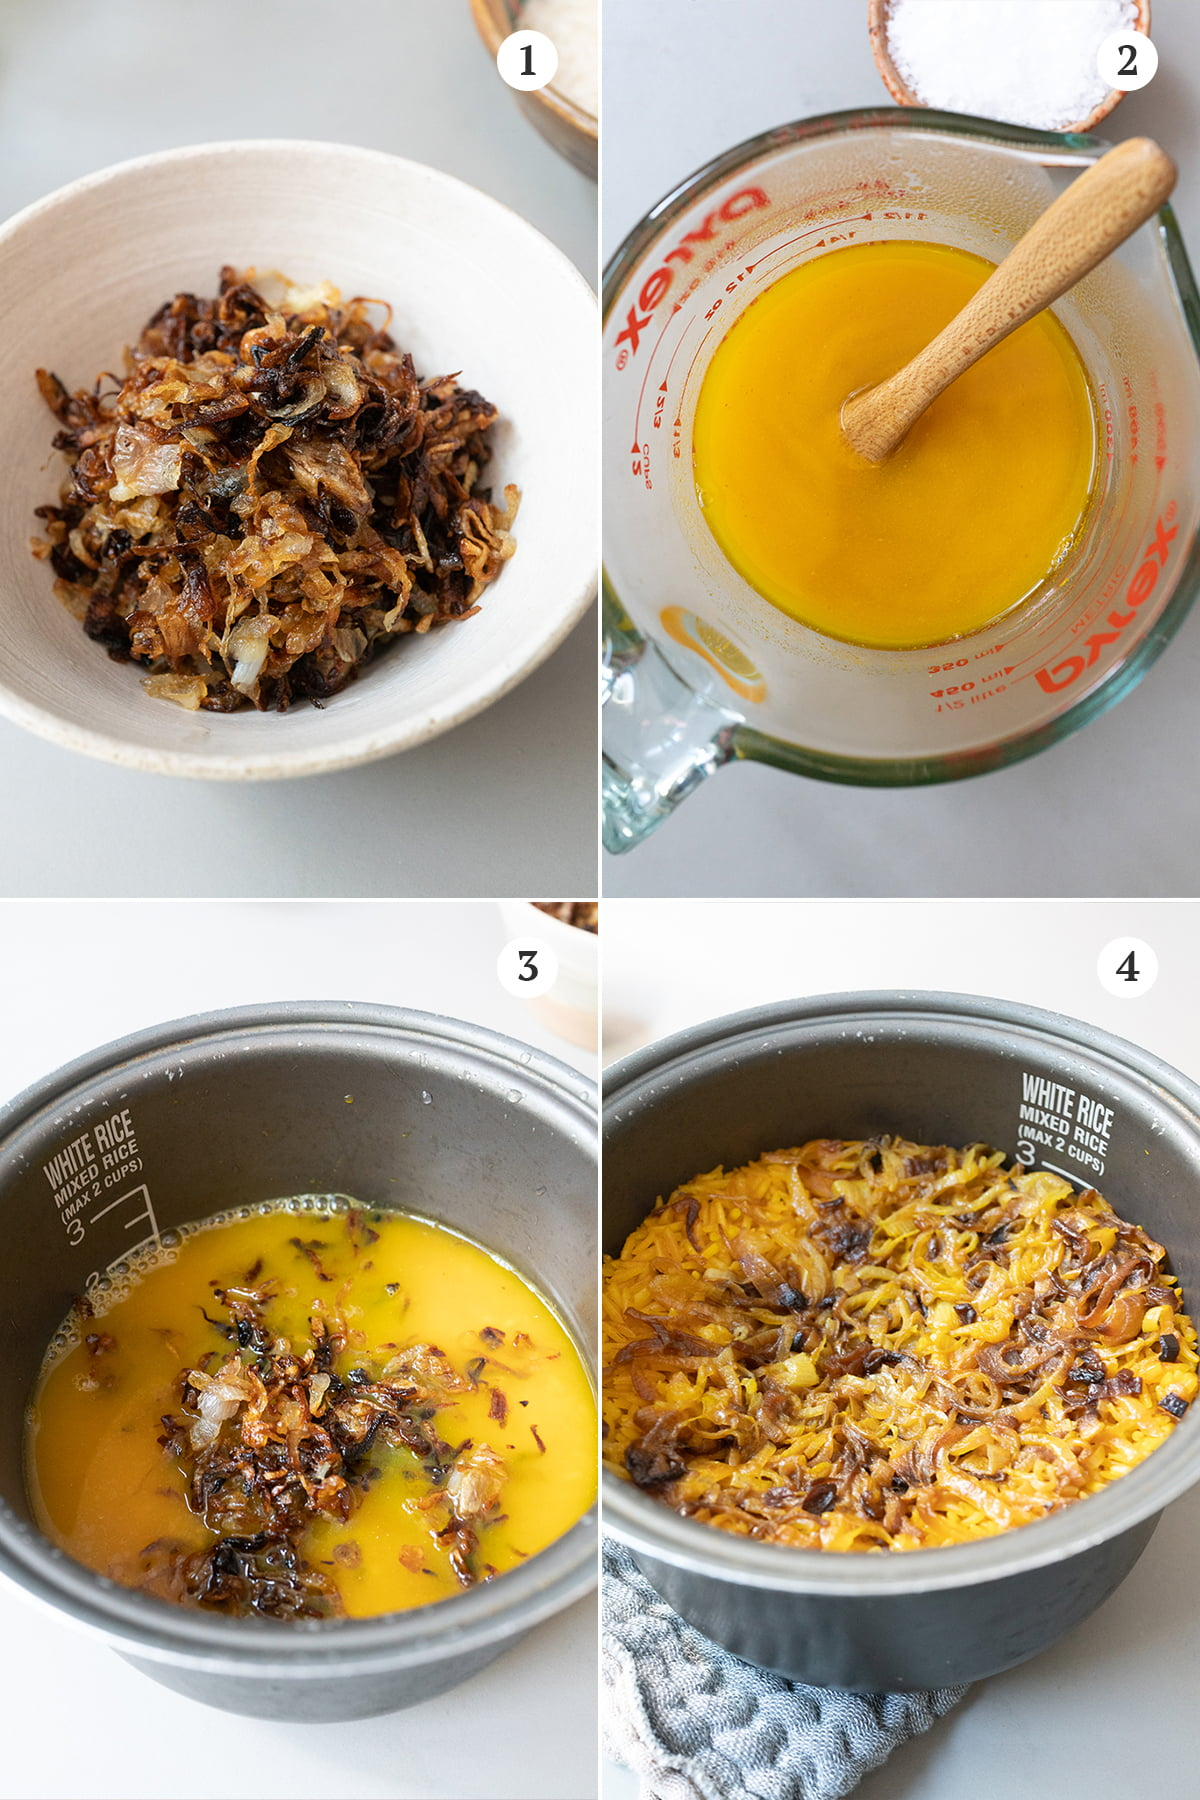 Collage of making turmeric rice steps. 1) sauté the shallots. 2) mix the chicken broth with turmeric powder and salt. 3) layer everything into the rice cooker. 4) cook the rice in the rice cooker and then fluff and mix.